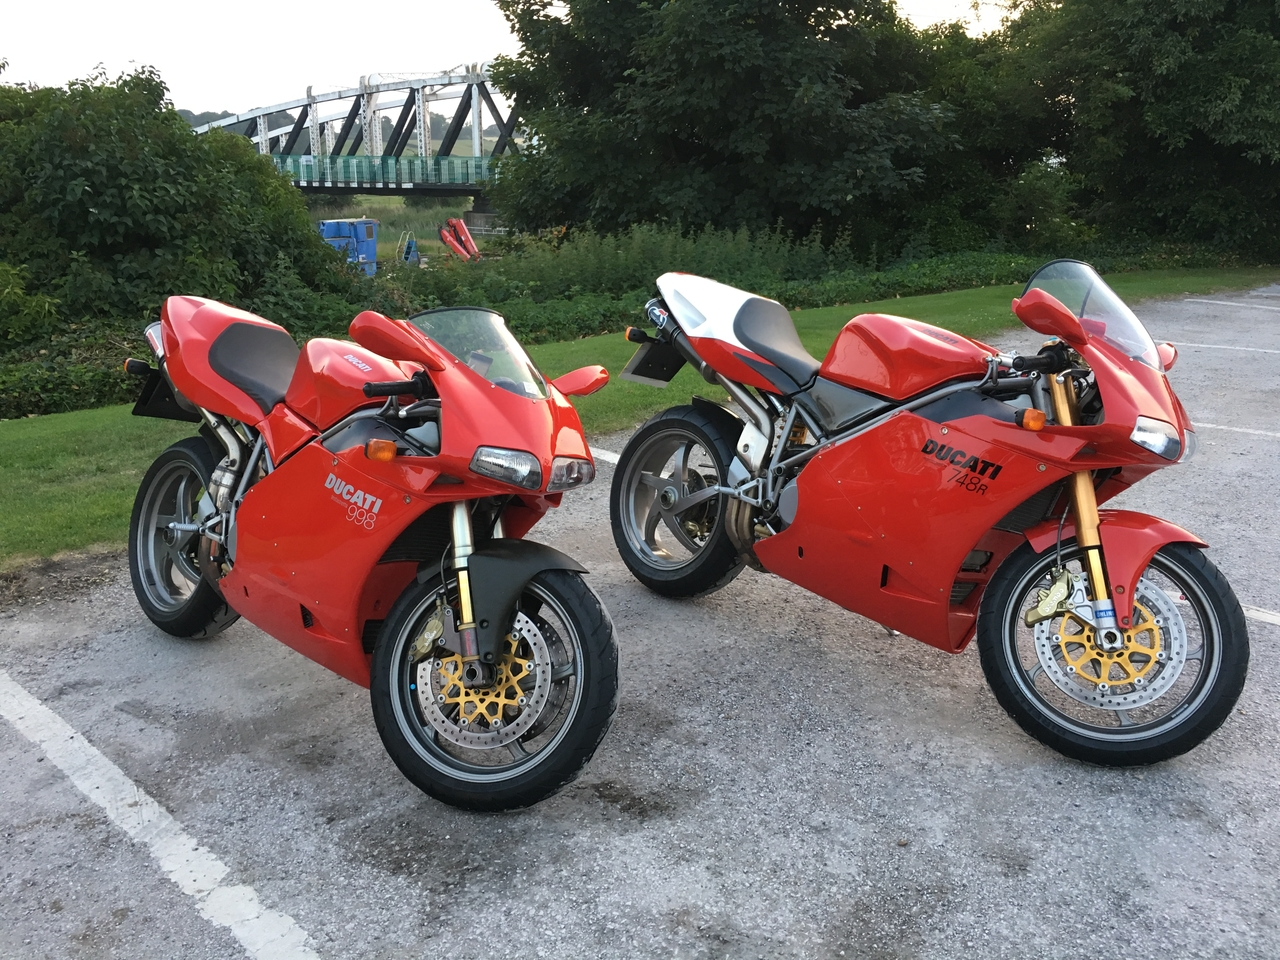 Mike an ian Wooly's 998